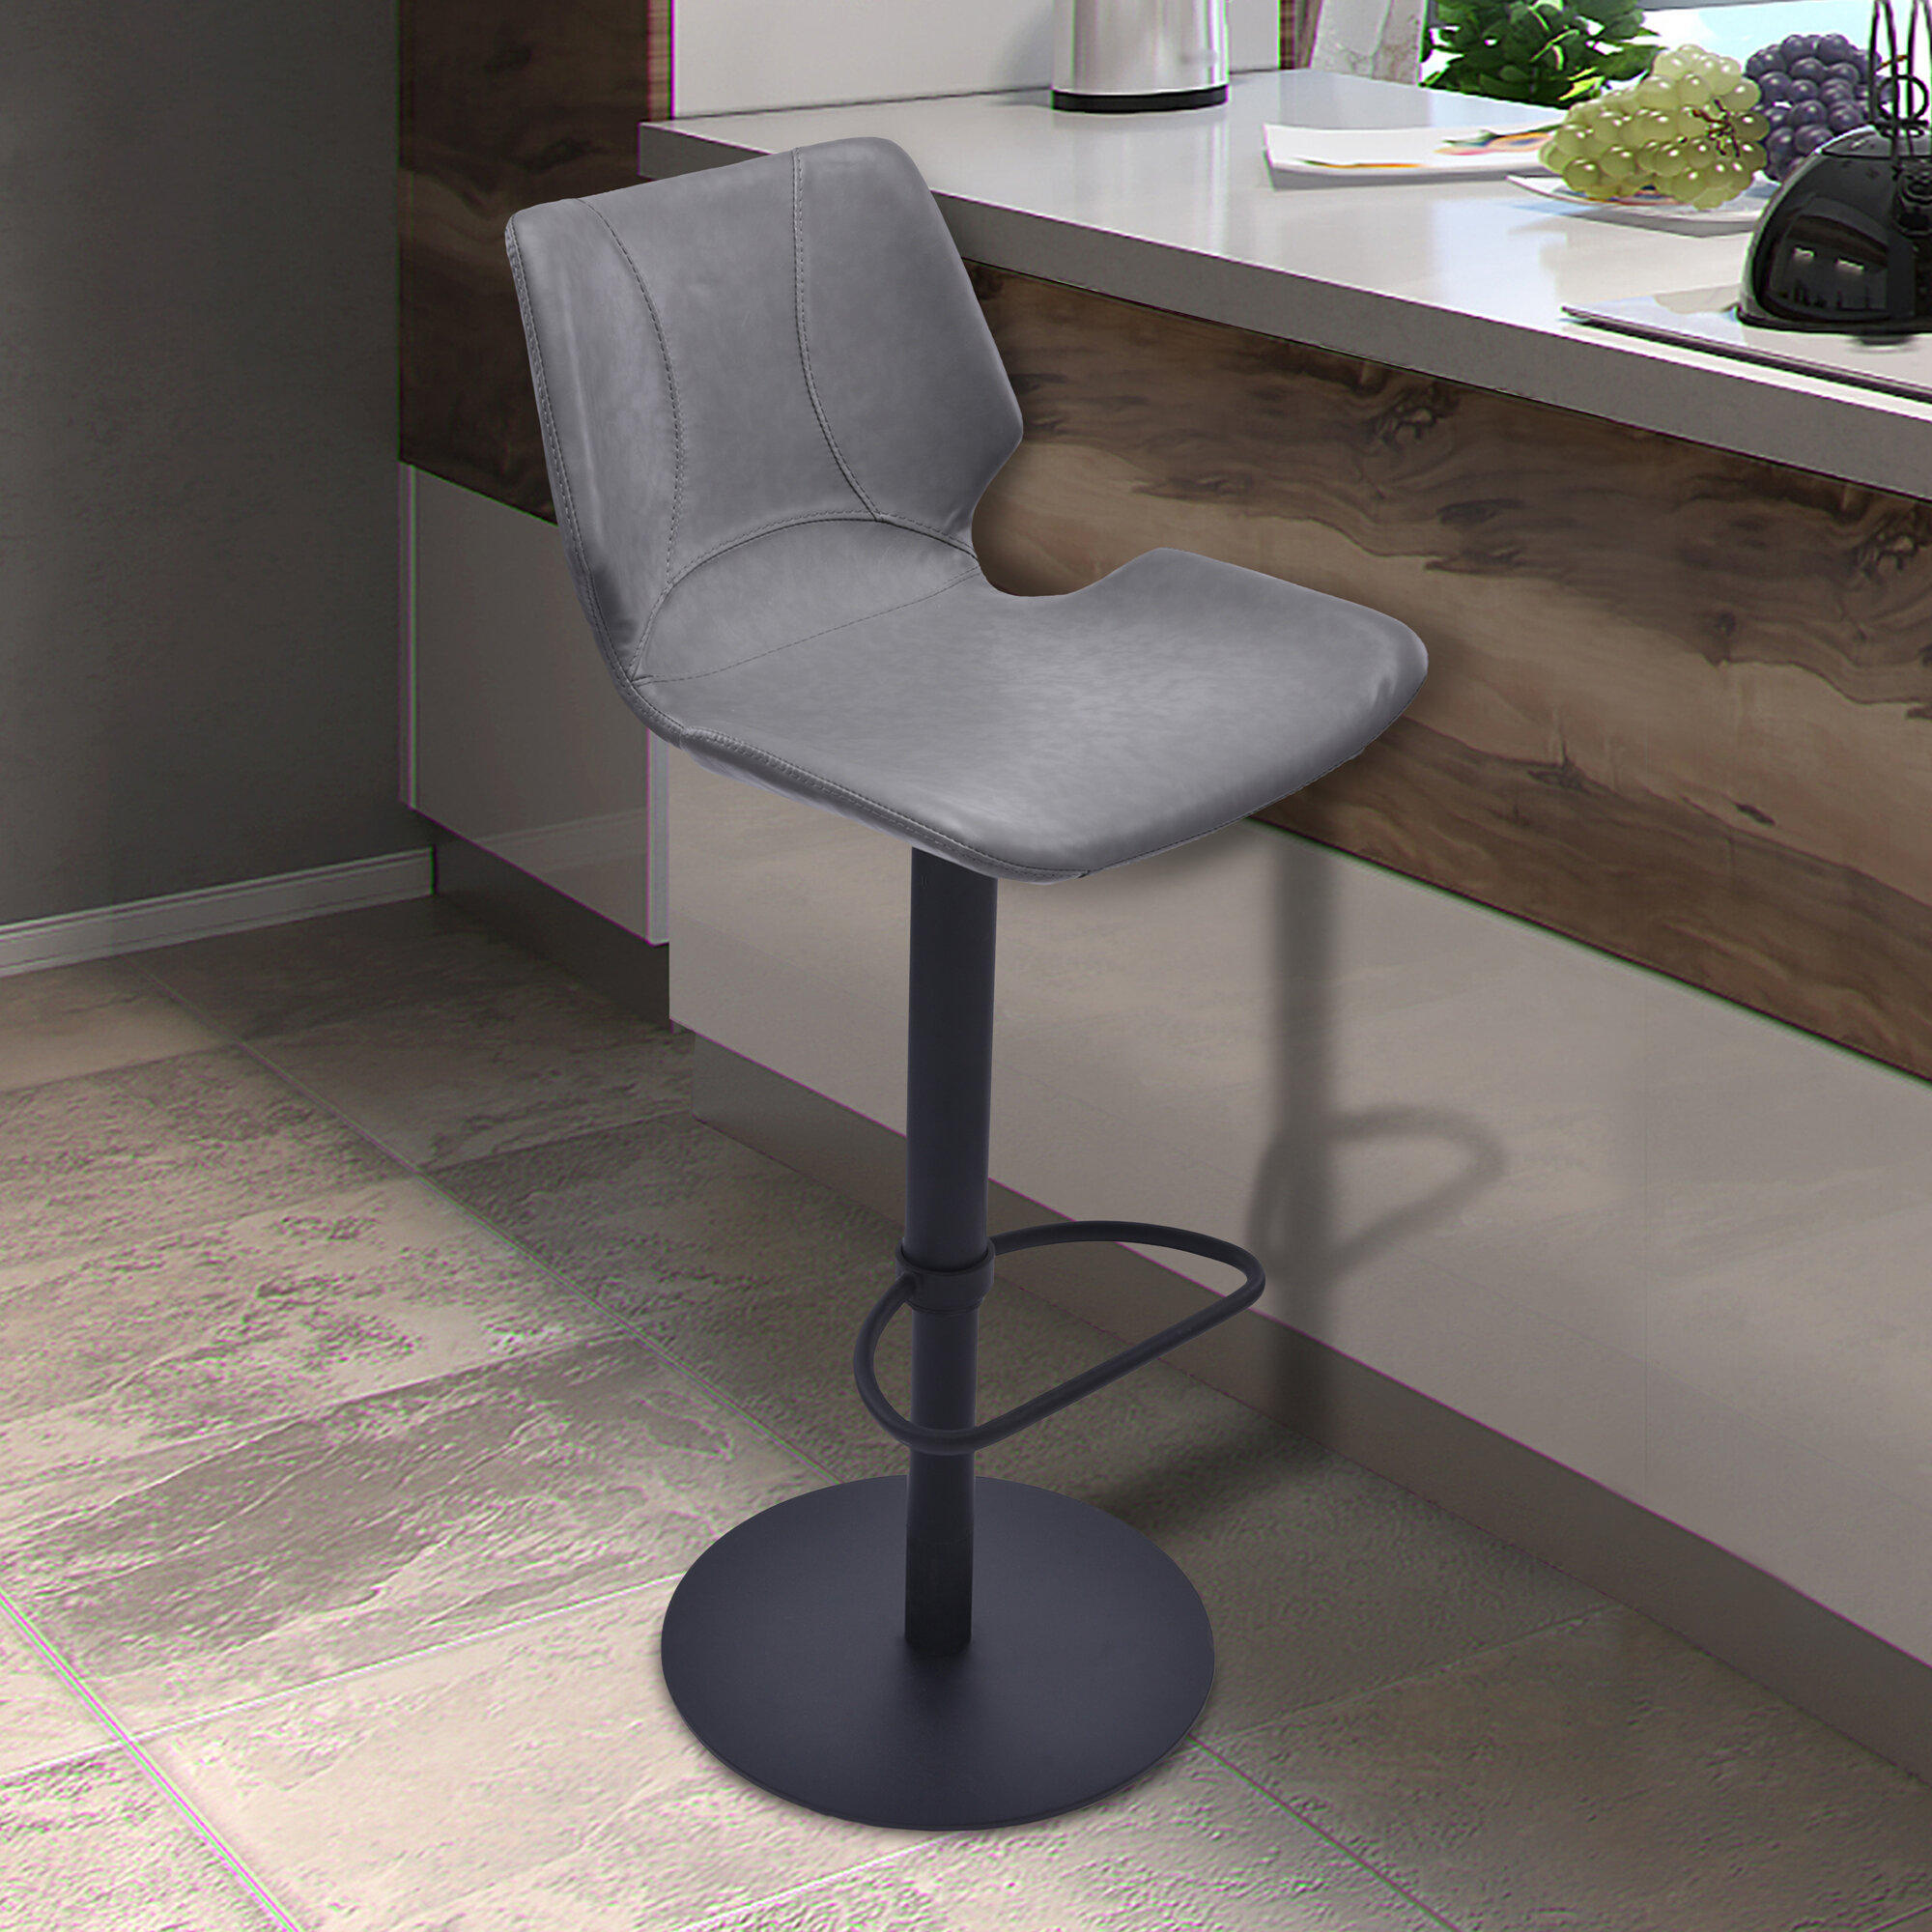 Stupendous Industrial Pedestal Bar Stools Youll Love In 2019 Wayfair Alphanode Cool Chair Designs And Ideas Alphanodeonline